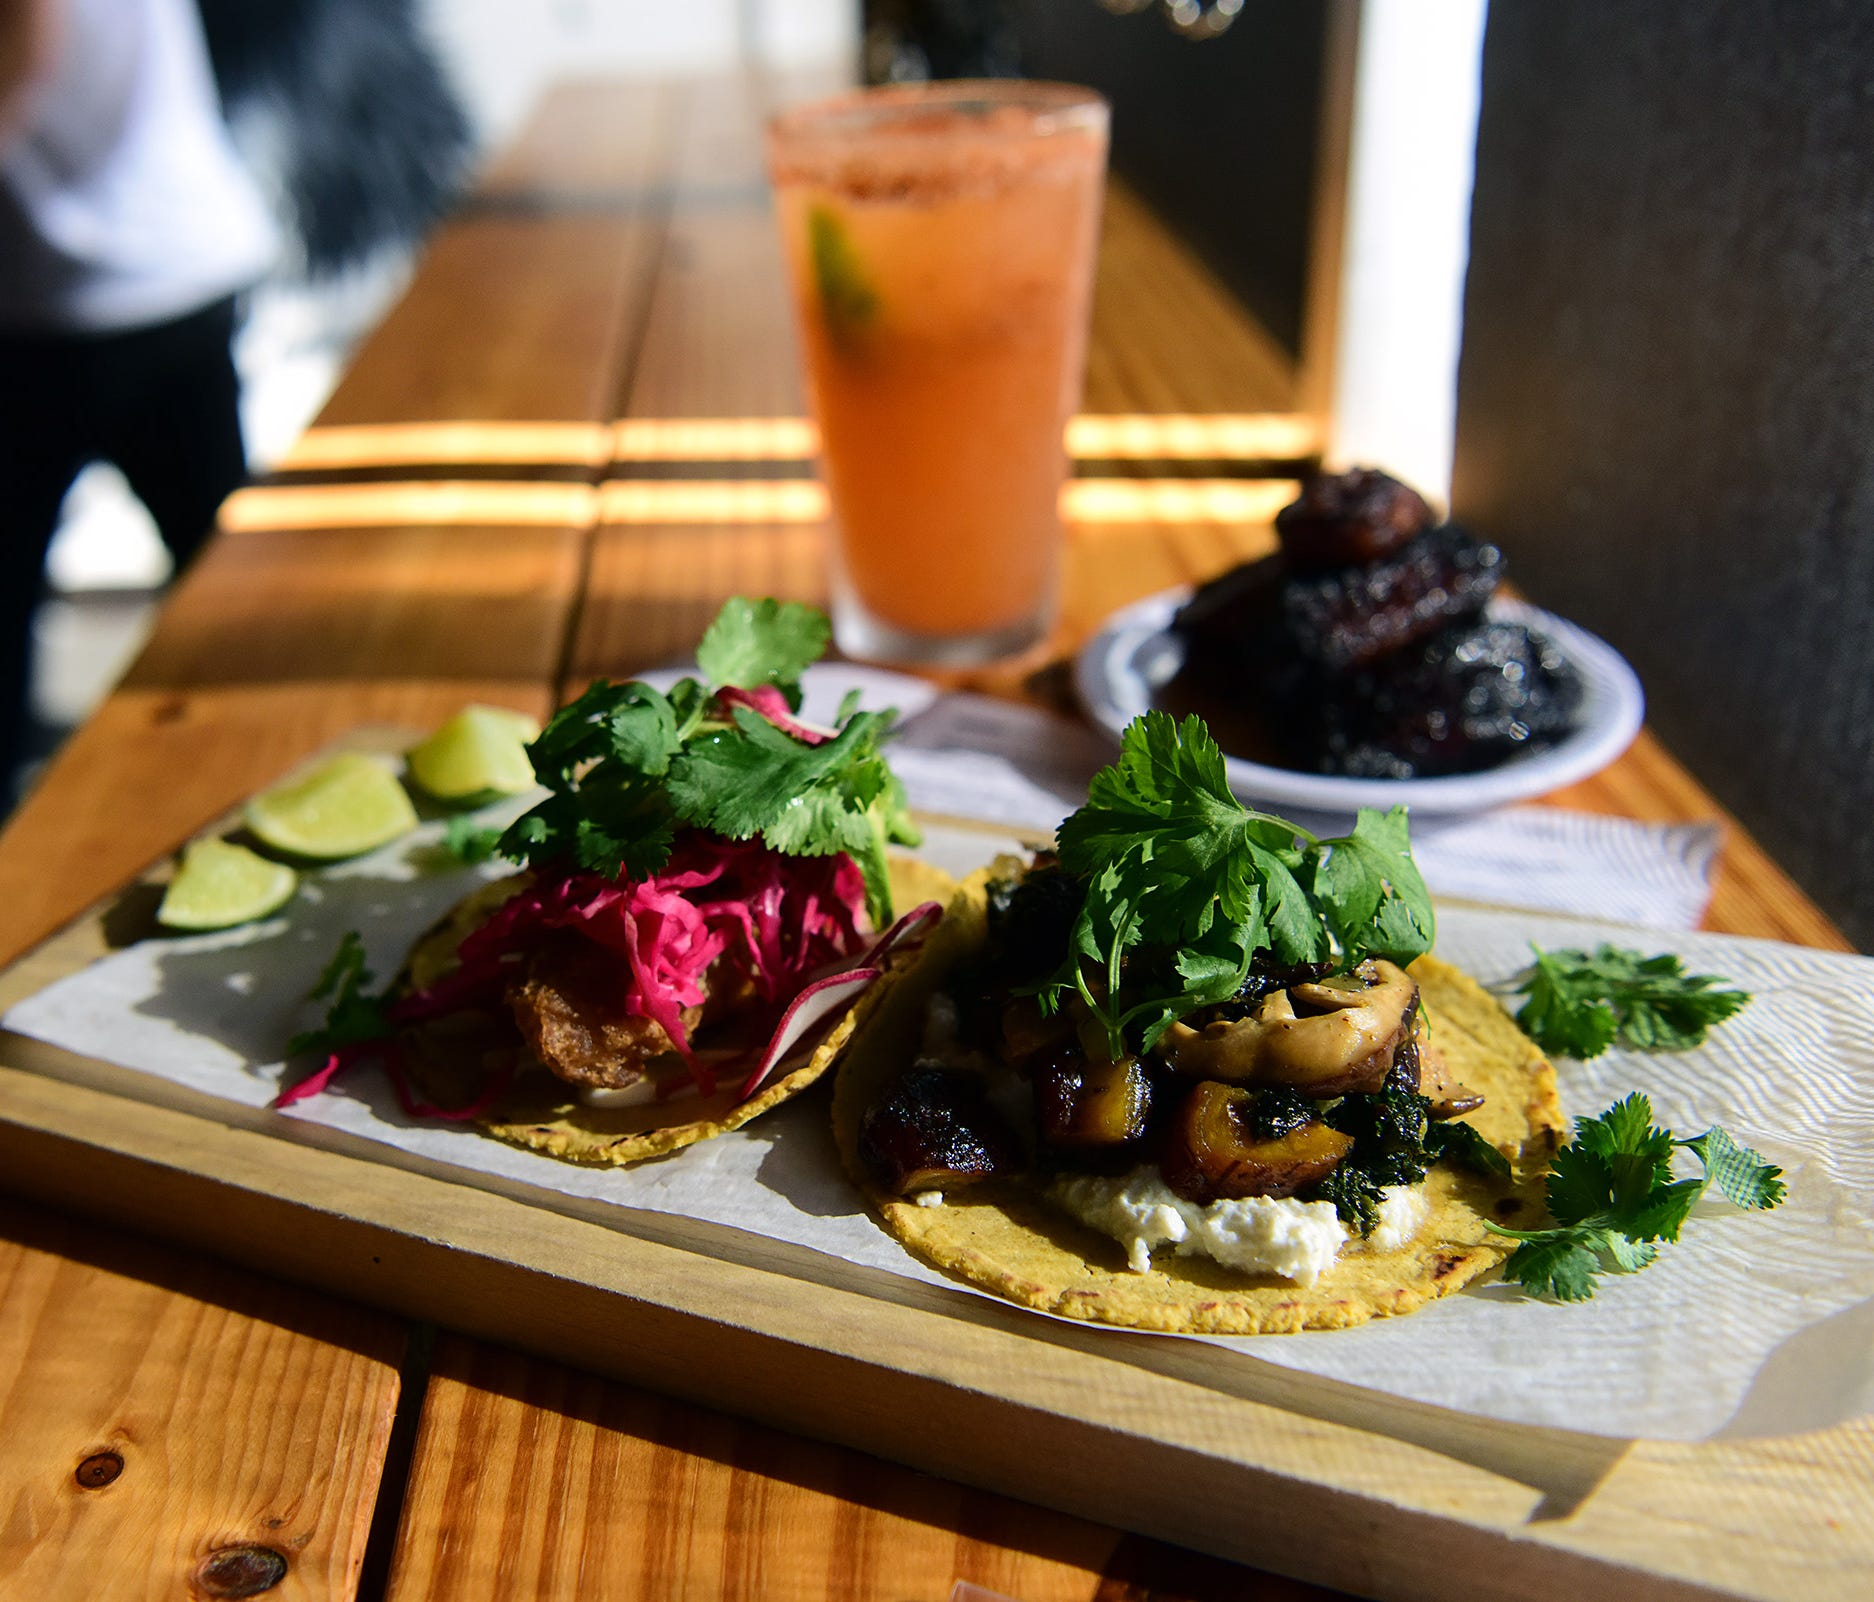 At Black Rooster Taqueria, a variety of tacos, such as the Black Rooster asada (right) and the vegetarian, range from $3.25 to $4.75.